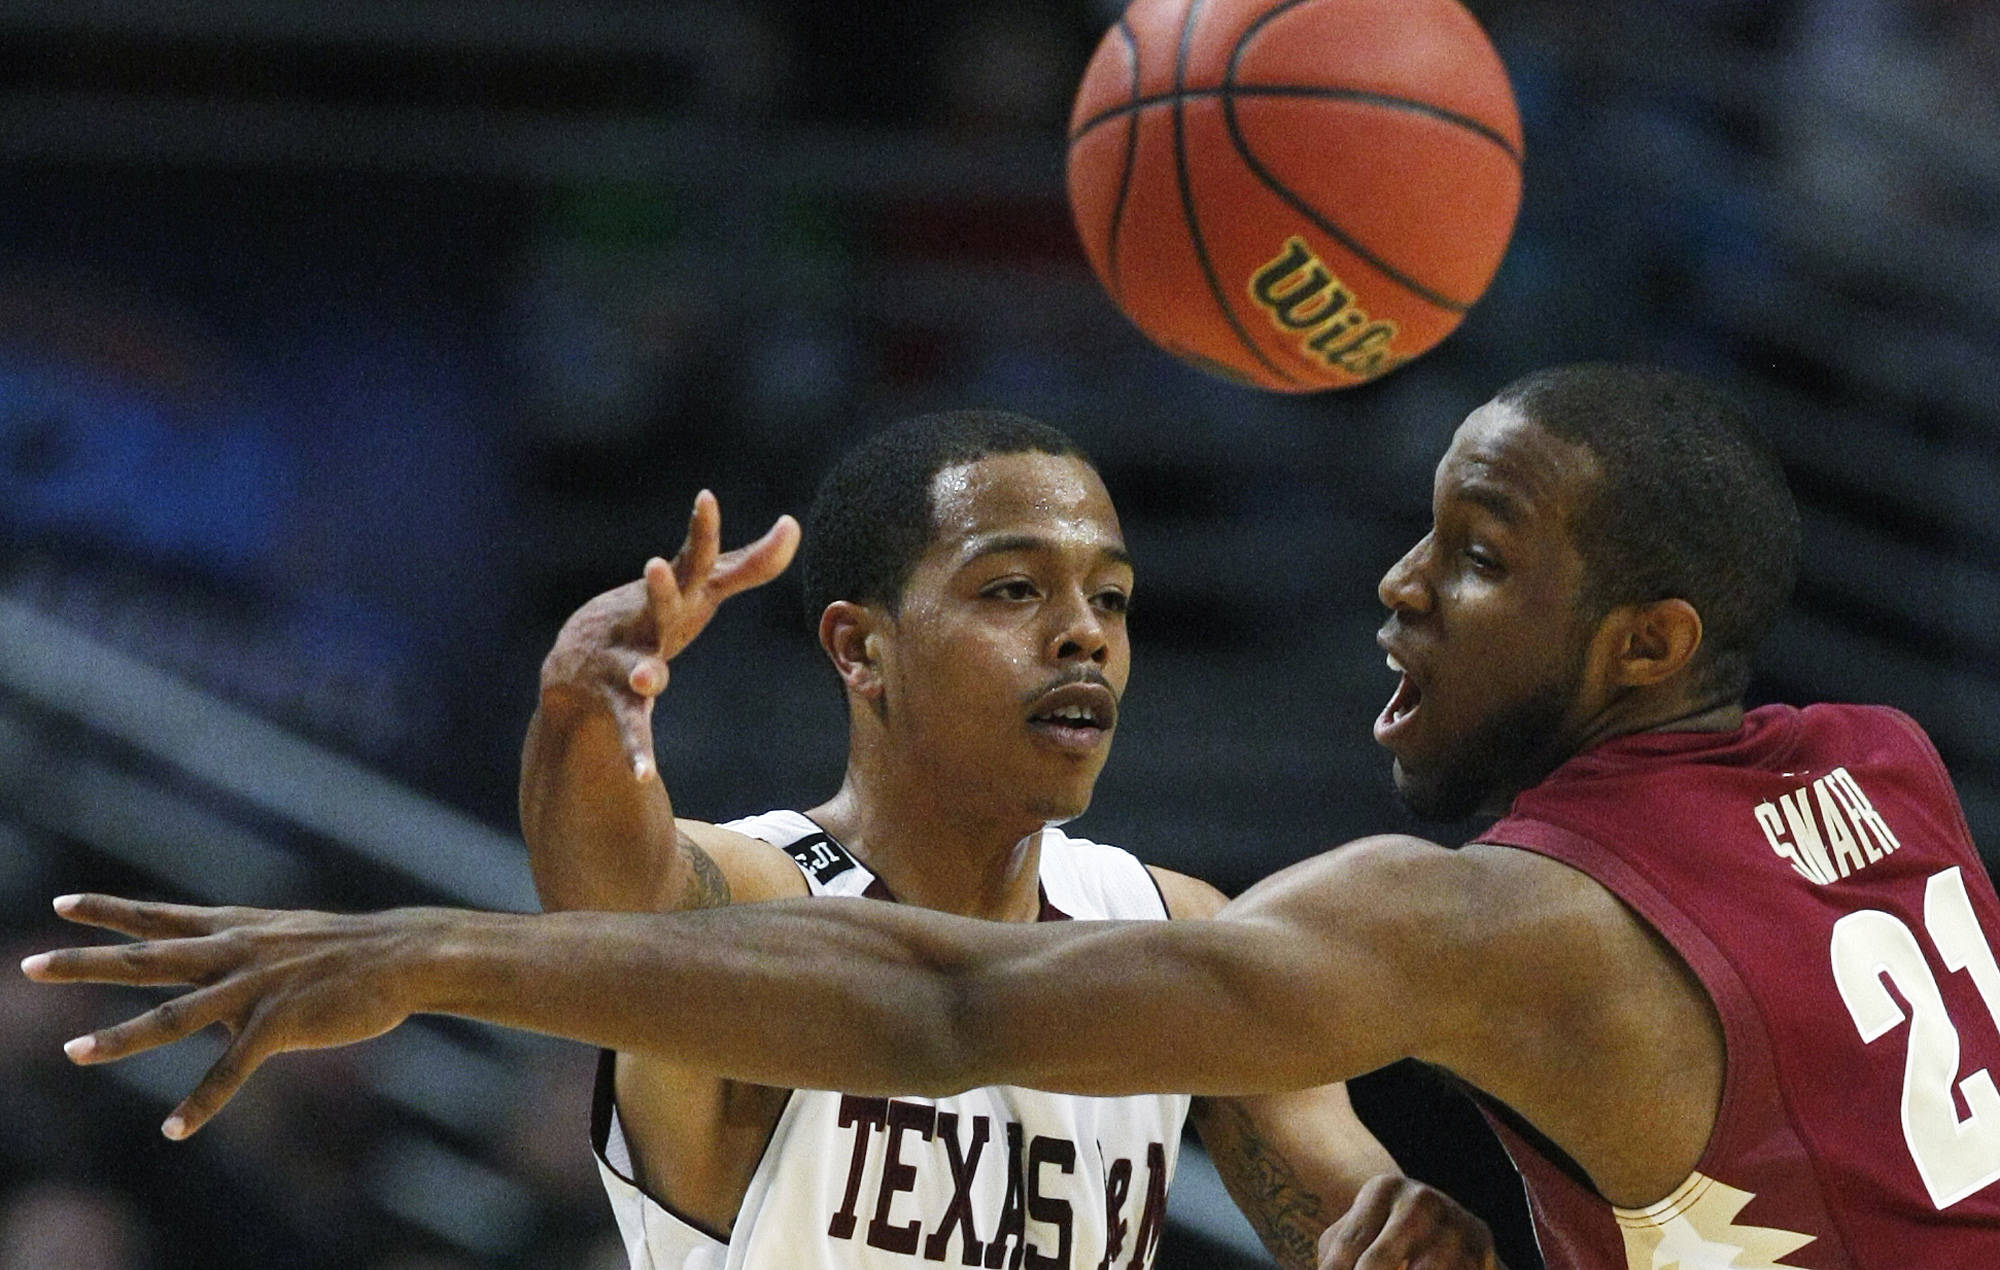 Texas A&M's B.J. Holmes passes the ball past Florida State's Michael Snaer. (AP Photo/Charles Rex Arbogast)